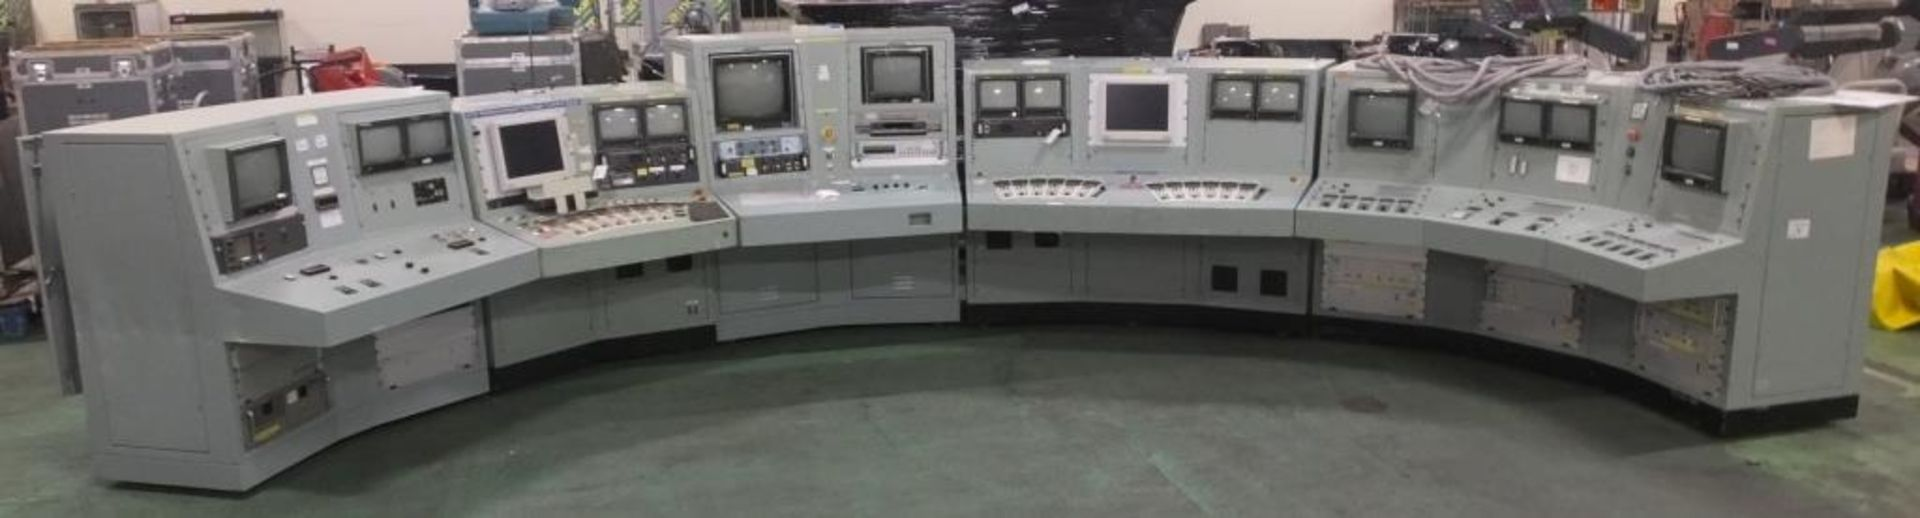 Ex Nuclear Plant Reactor Control / Monitoring System